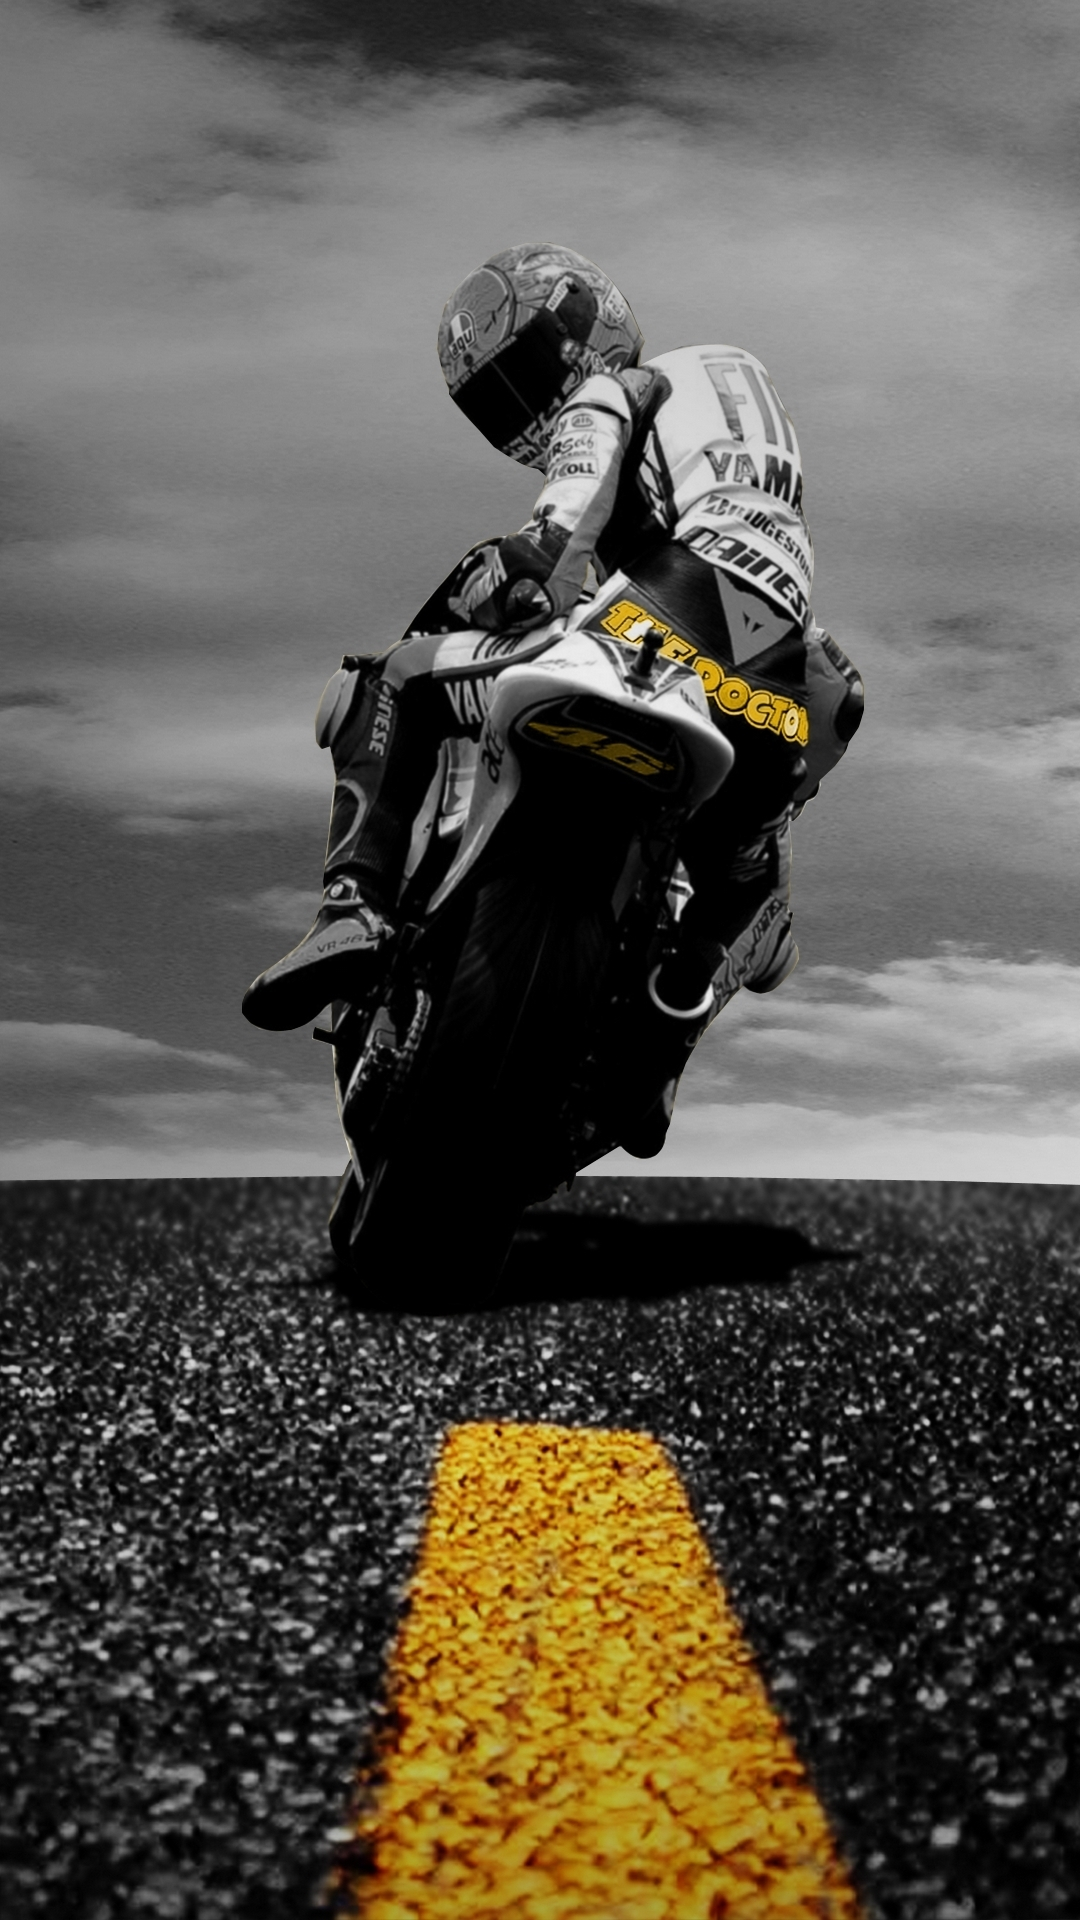 Wallpaper iphone valentino rossi - Check Wallpaper Abyss